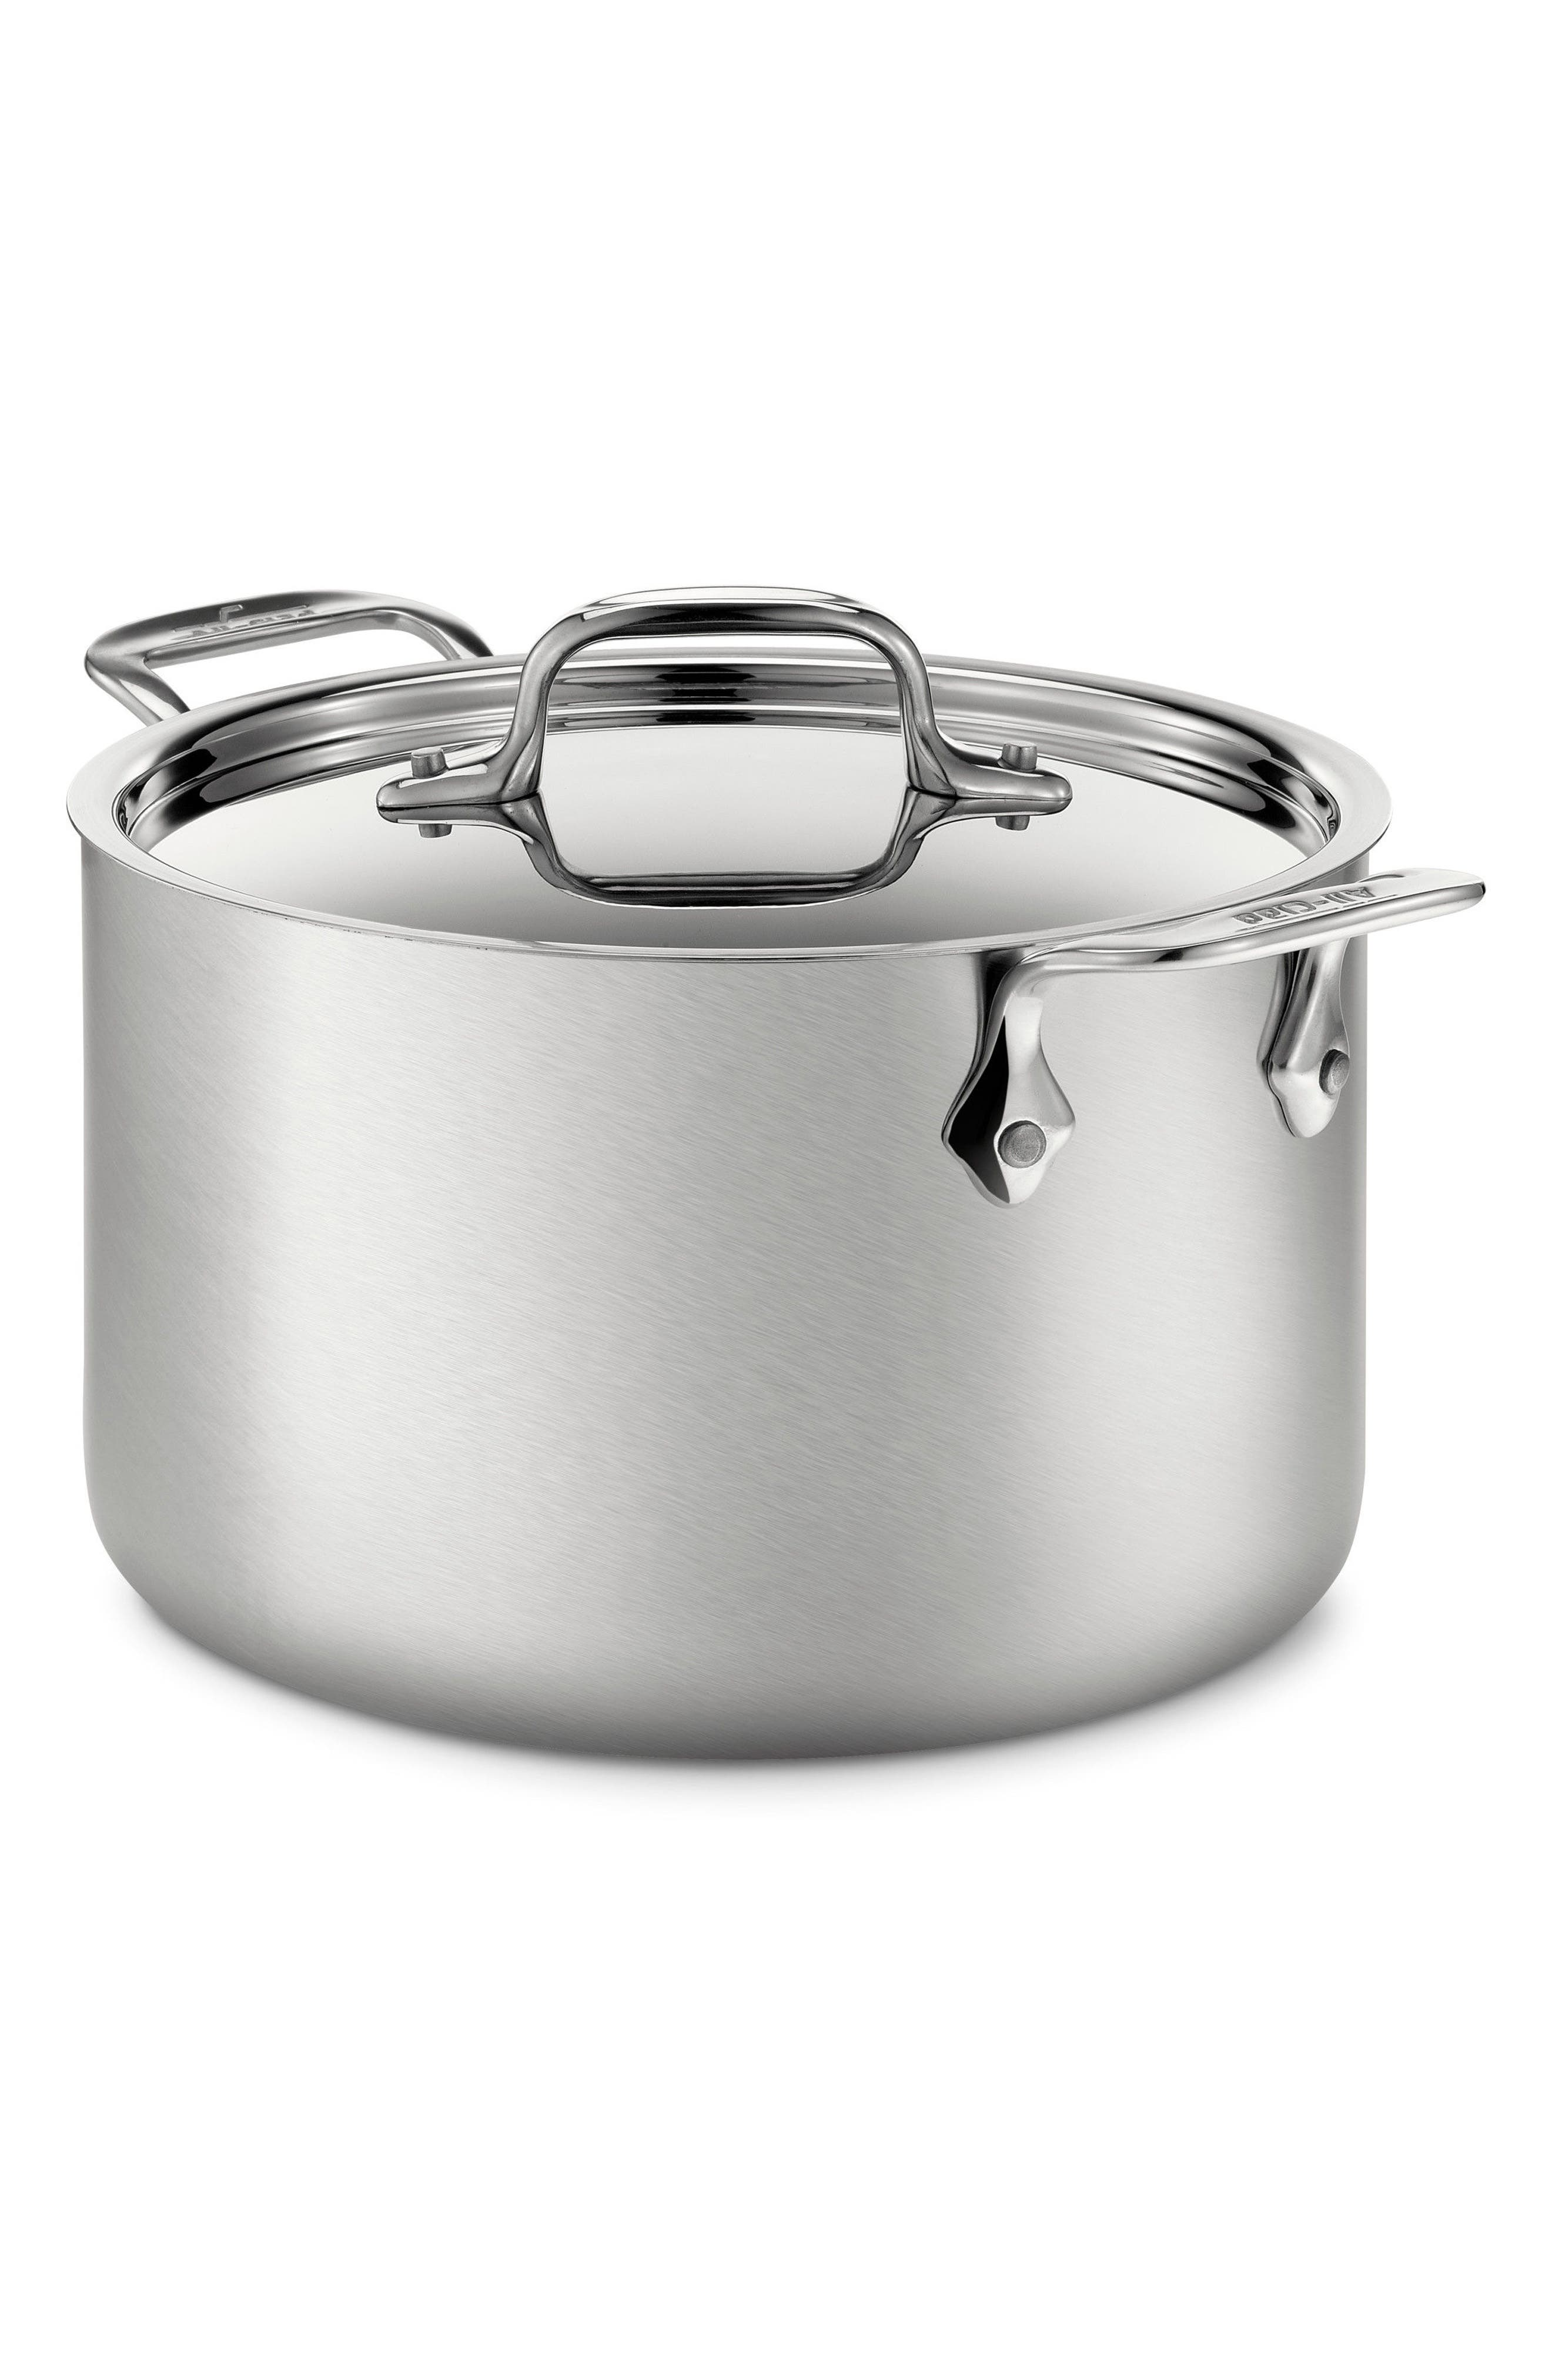 Main Image - All-Clad 4-Quart Stainless Steel Soup Pot